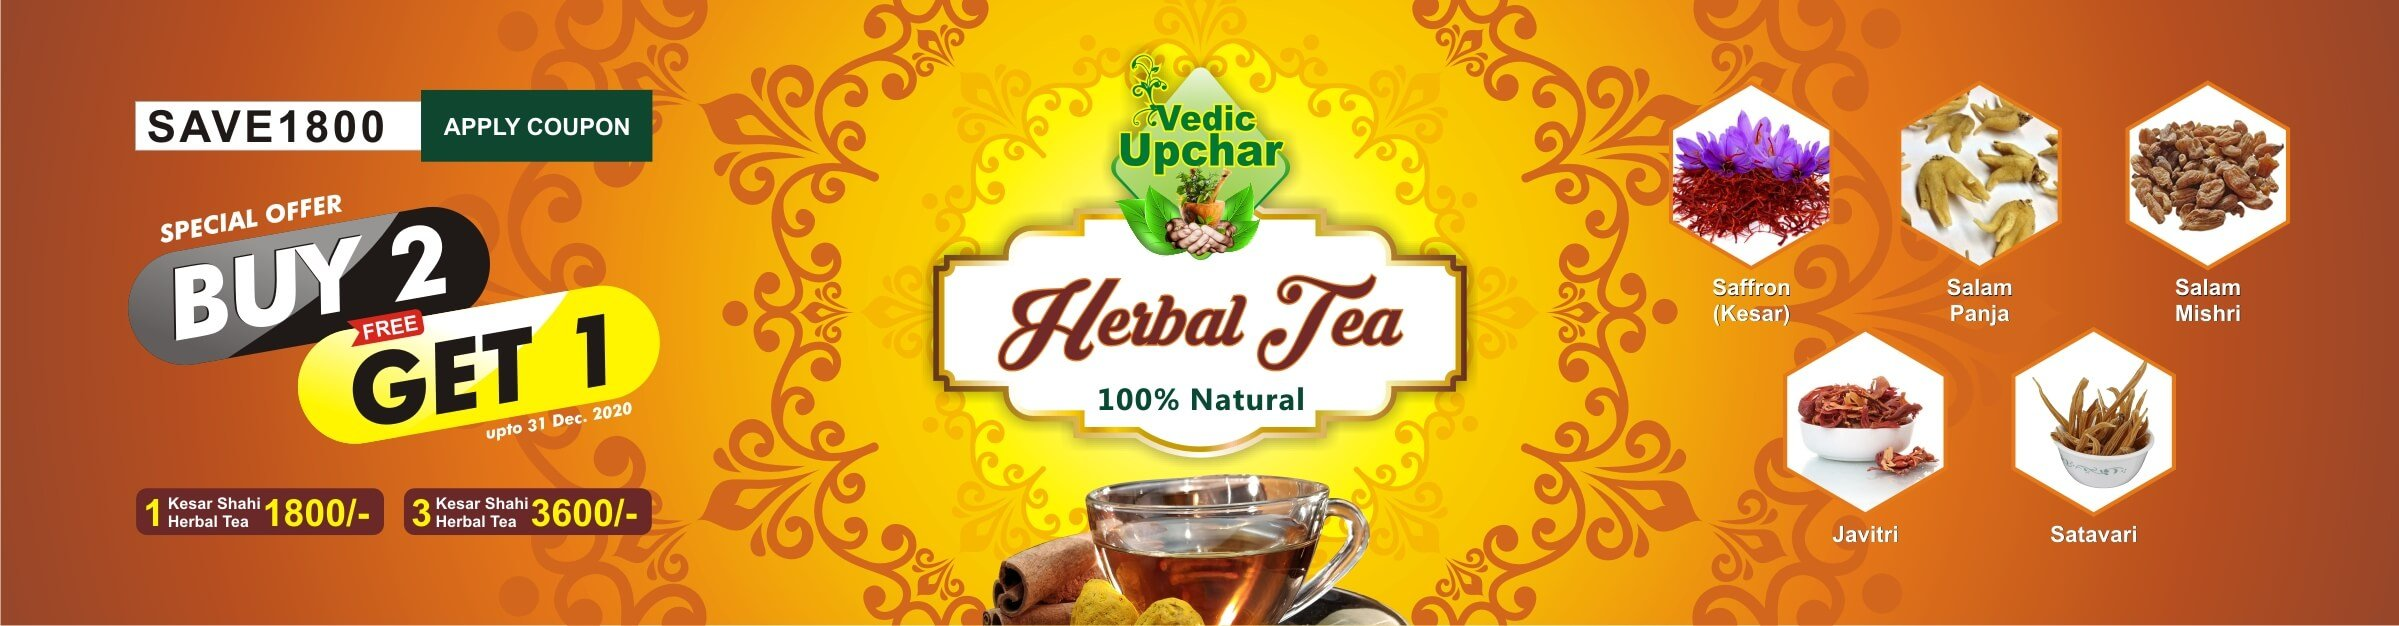 Vedic Herbal Tea  – 36 Herbs Combination – Vedic Upchar by Anil Bansal